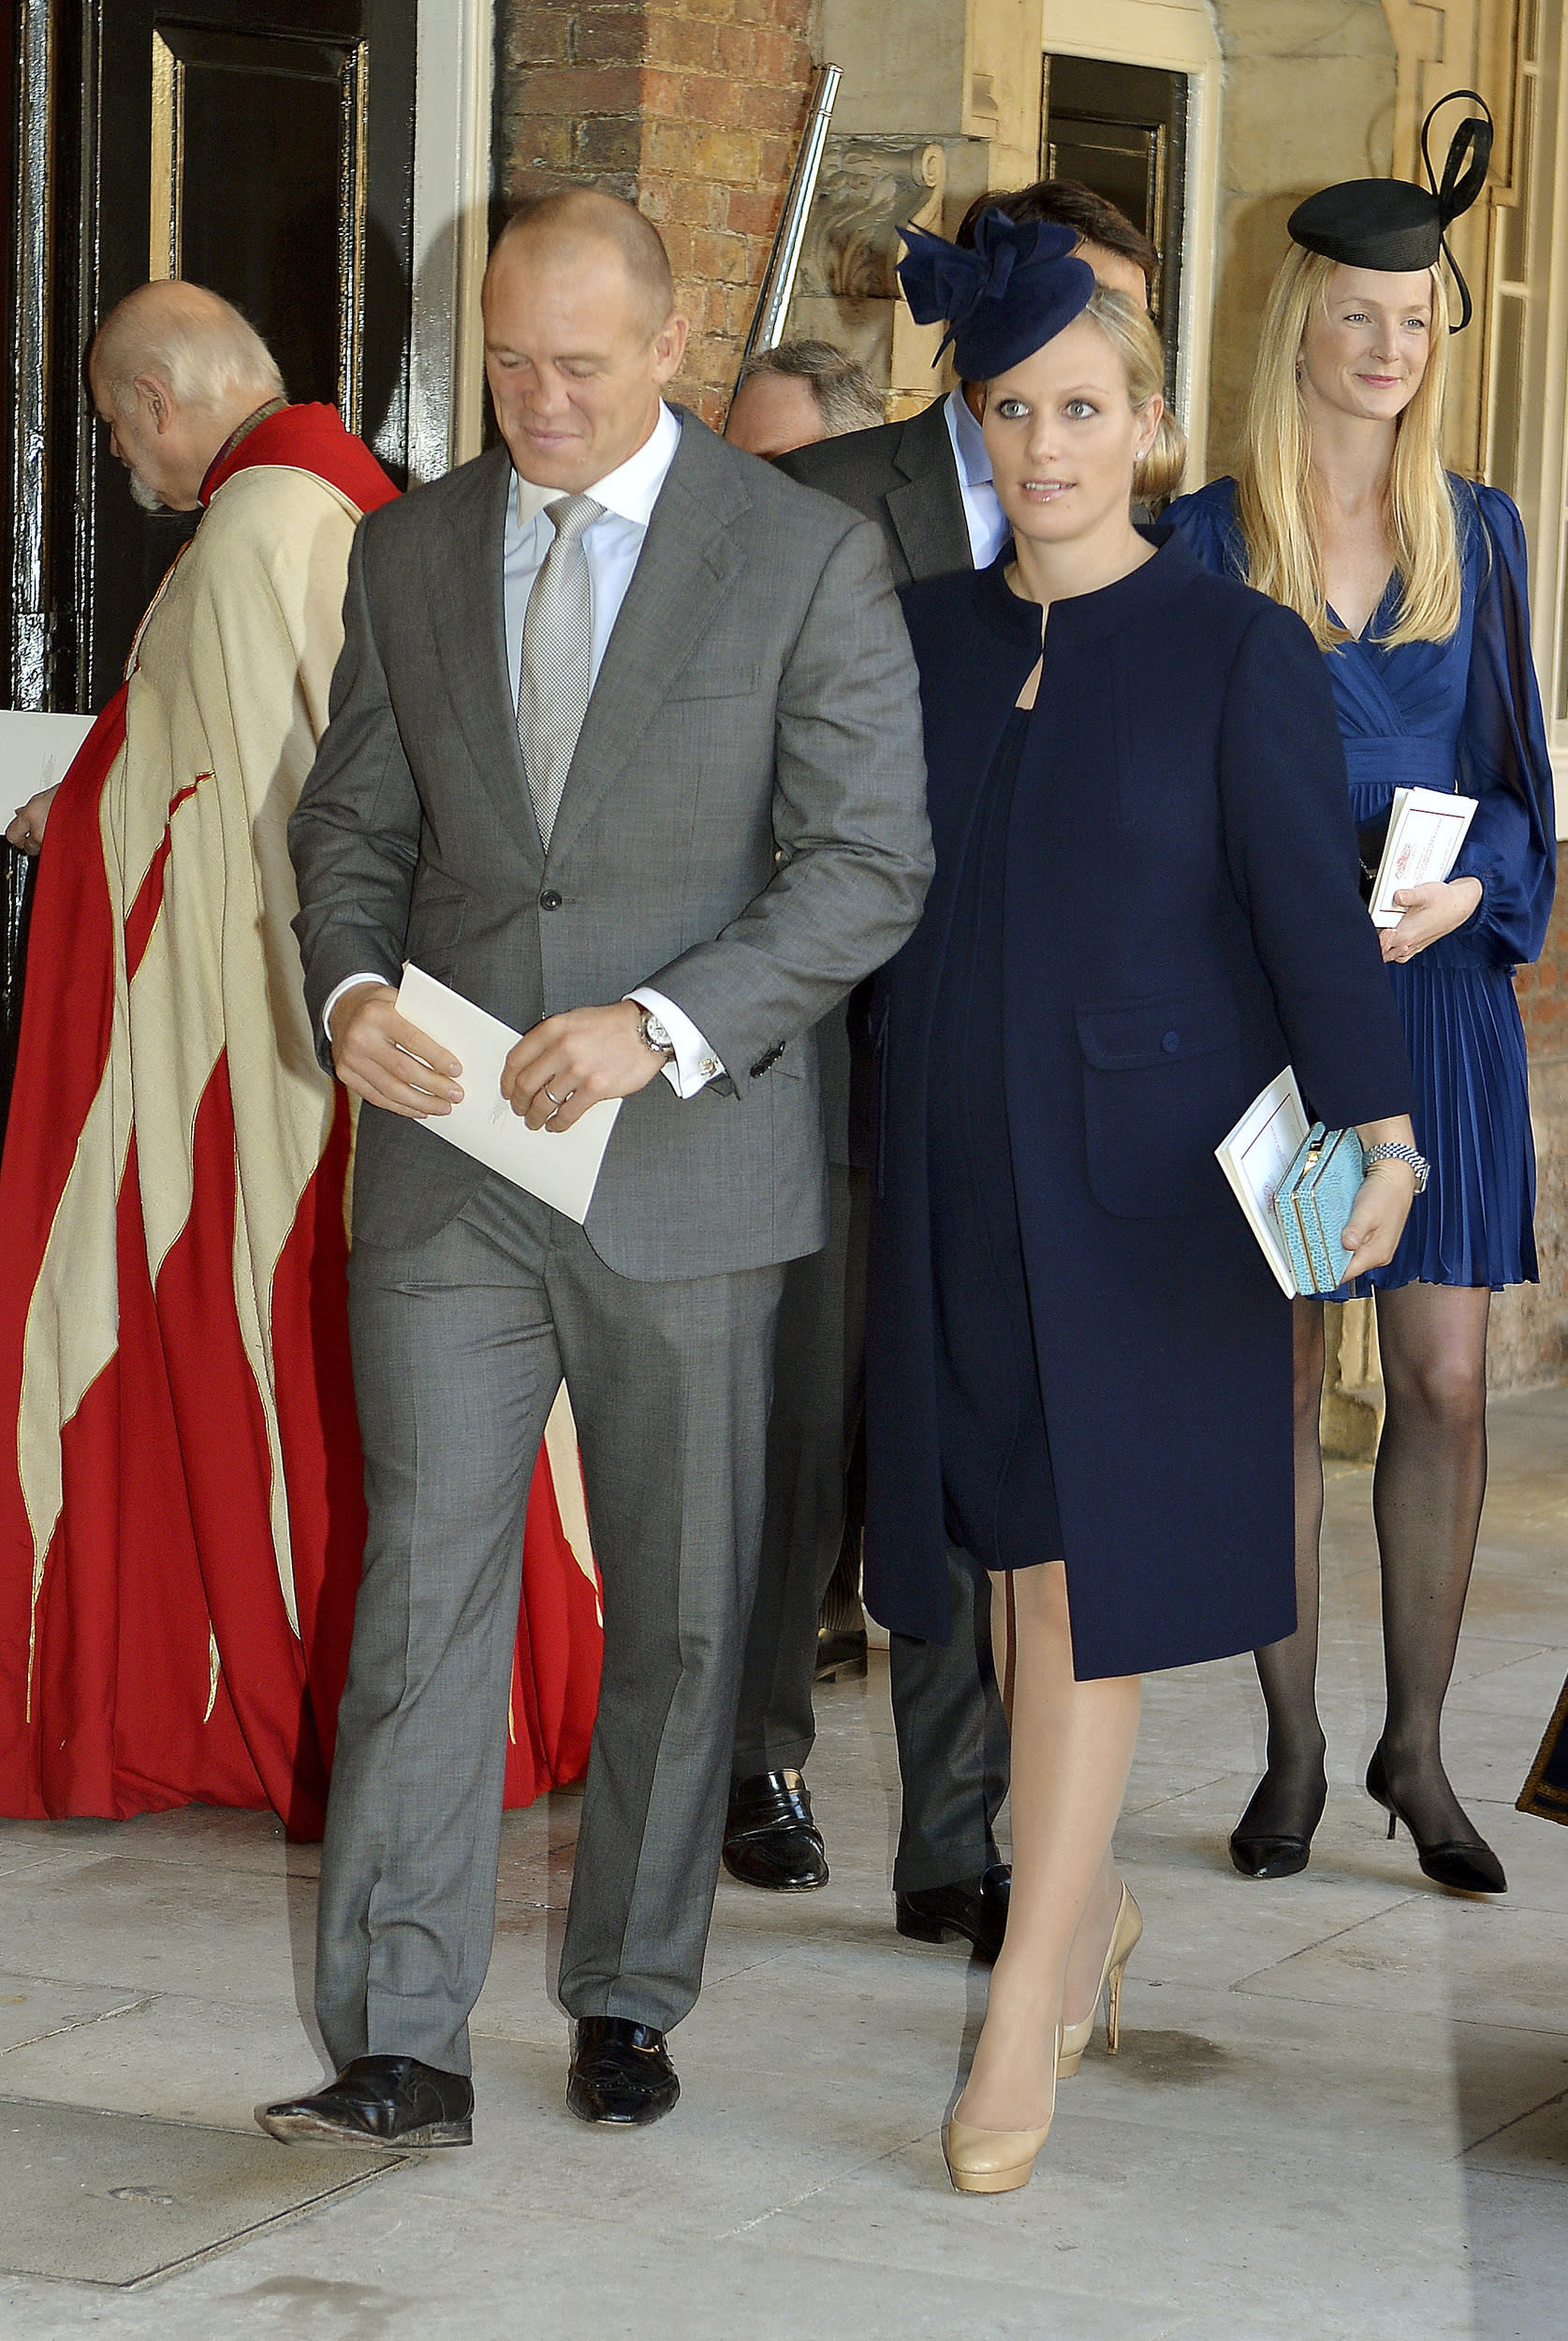 Britain's Zara Philips and her husband Mike Tindall leave after the christening of Prince George at St James's Palace in London October 23, 2013. REUTERS/John Stillwell/pool  (BRITAIN - Tags: ROYALS ENTERTAINMENT SOCIETY)